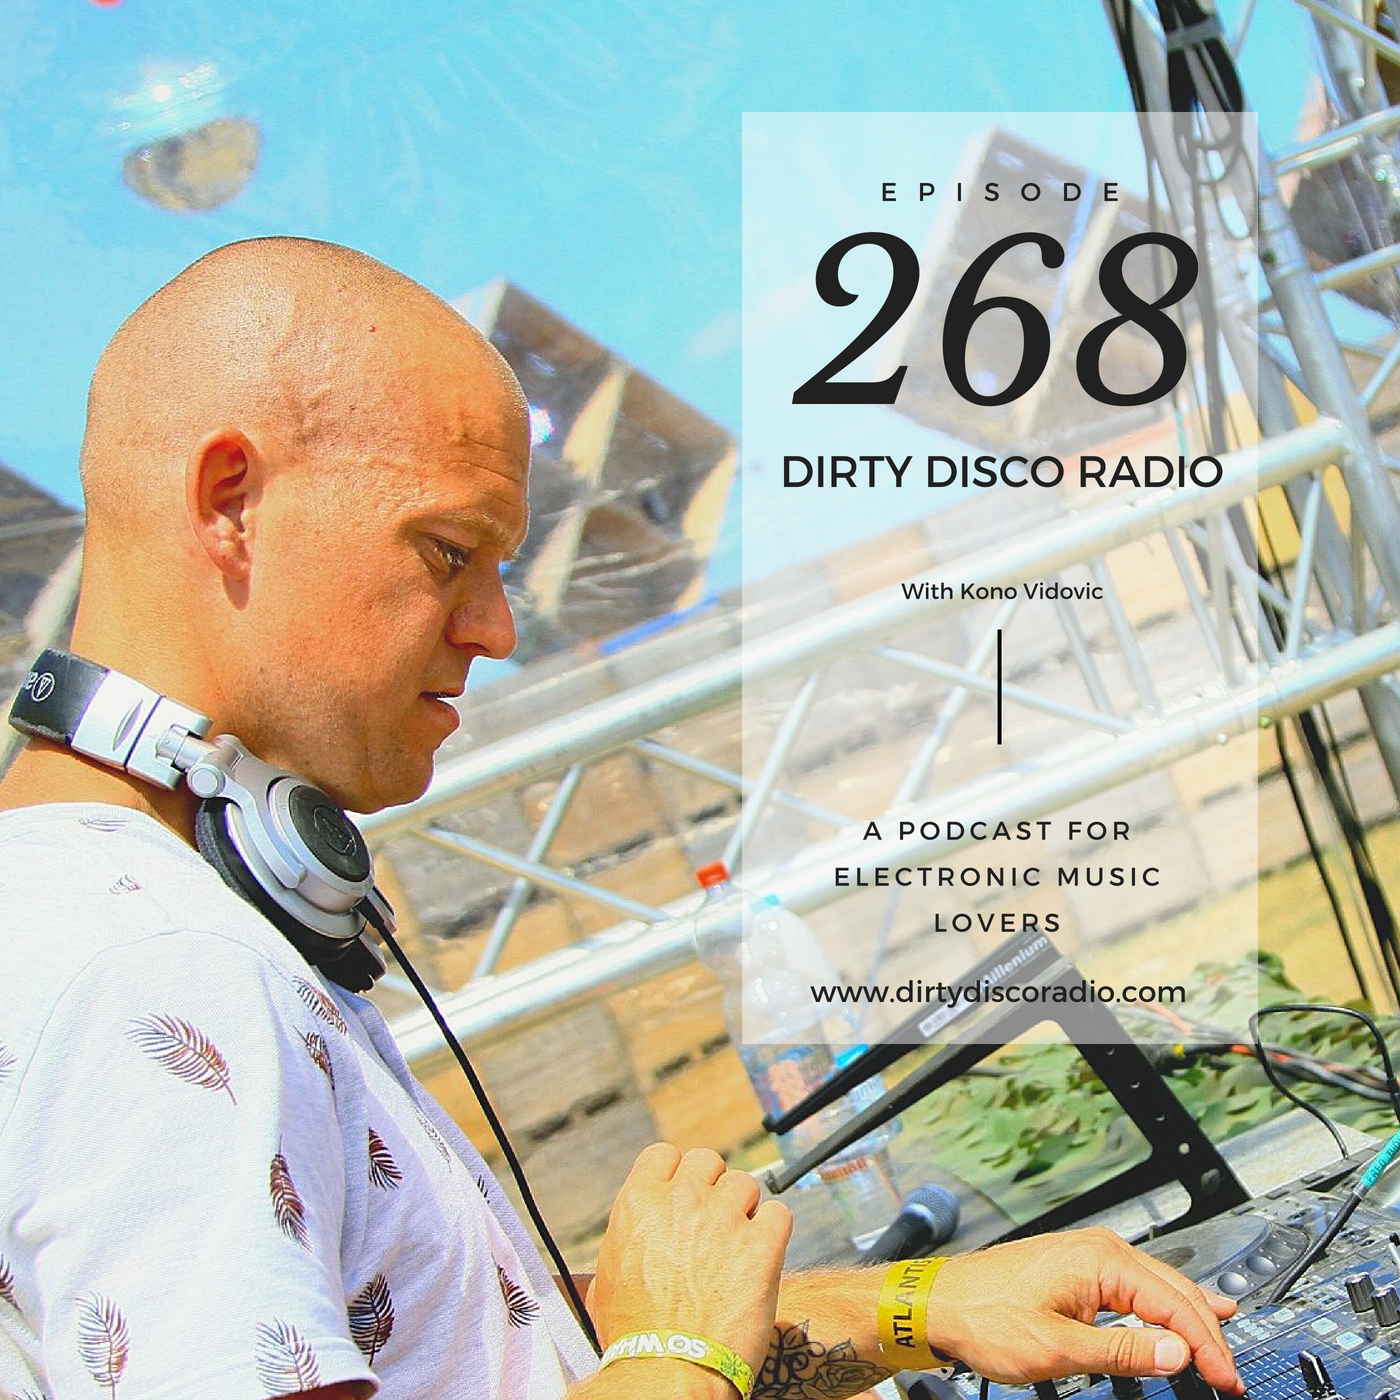 Disco Edits, House Music & DJ Talks - Dirty Disco Radio 268